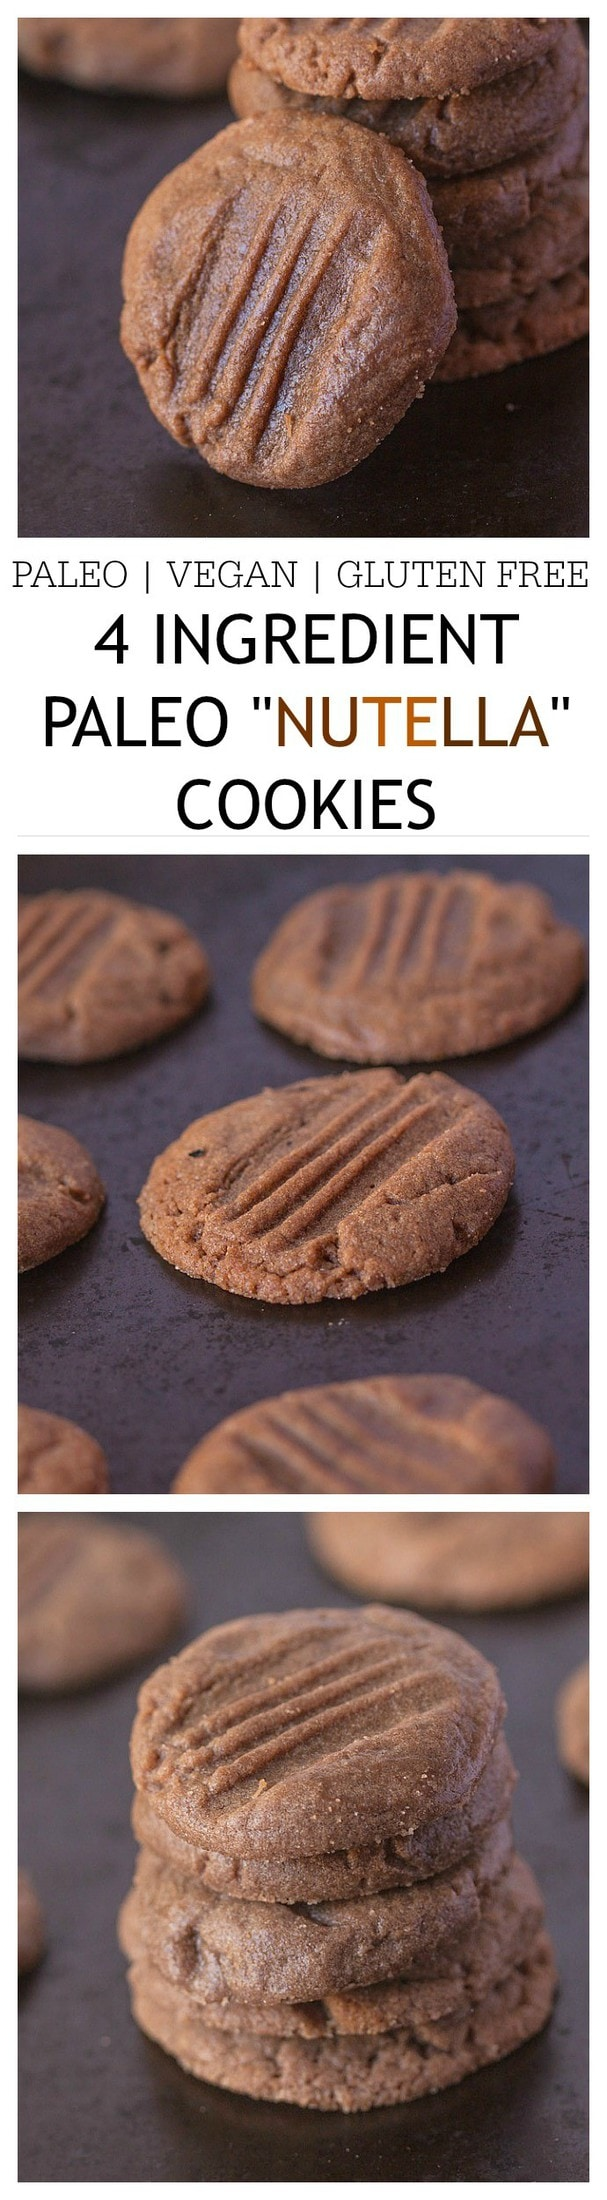 "Healthy 4 Ingredient Paleo ""Nutella"" Cookies- Just FOUR ingredients are needed to make these paleo friendly 'nutella' cookies- 1 bowl, 10 minutes and you'll have chewy, delicious and healthy cookies ready! Paleo, gluten free and a vegan option too! @thebigmansworld - thebigmansworld.com"